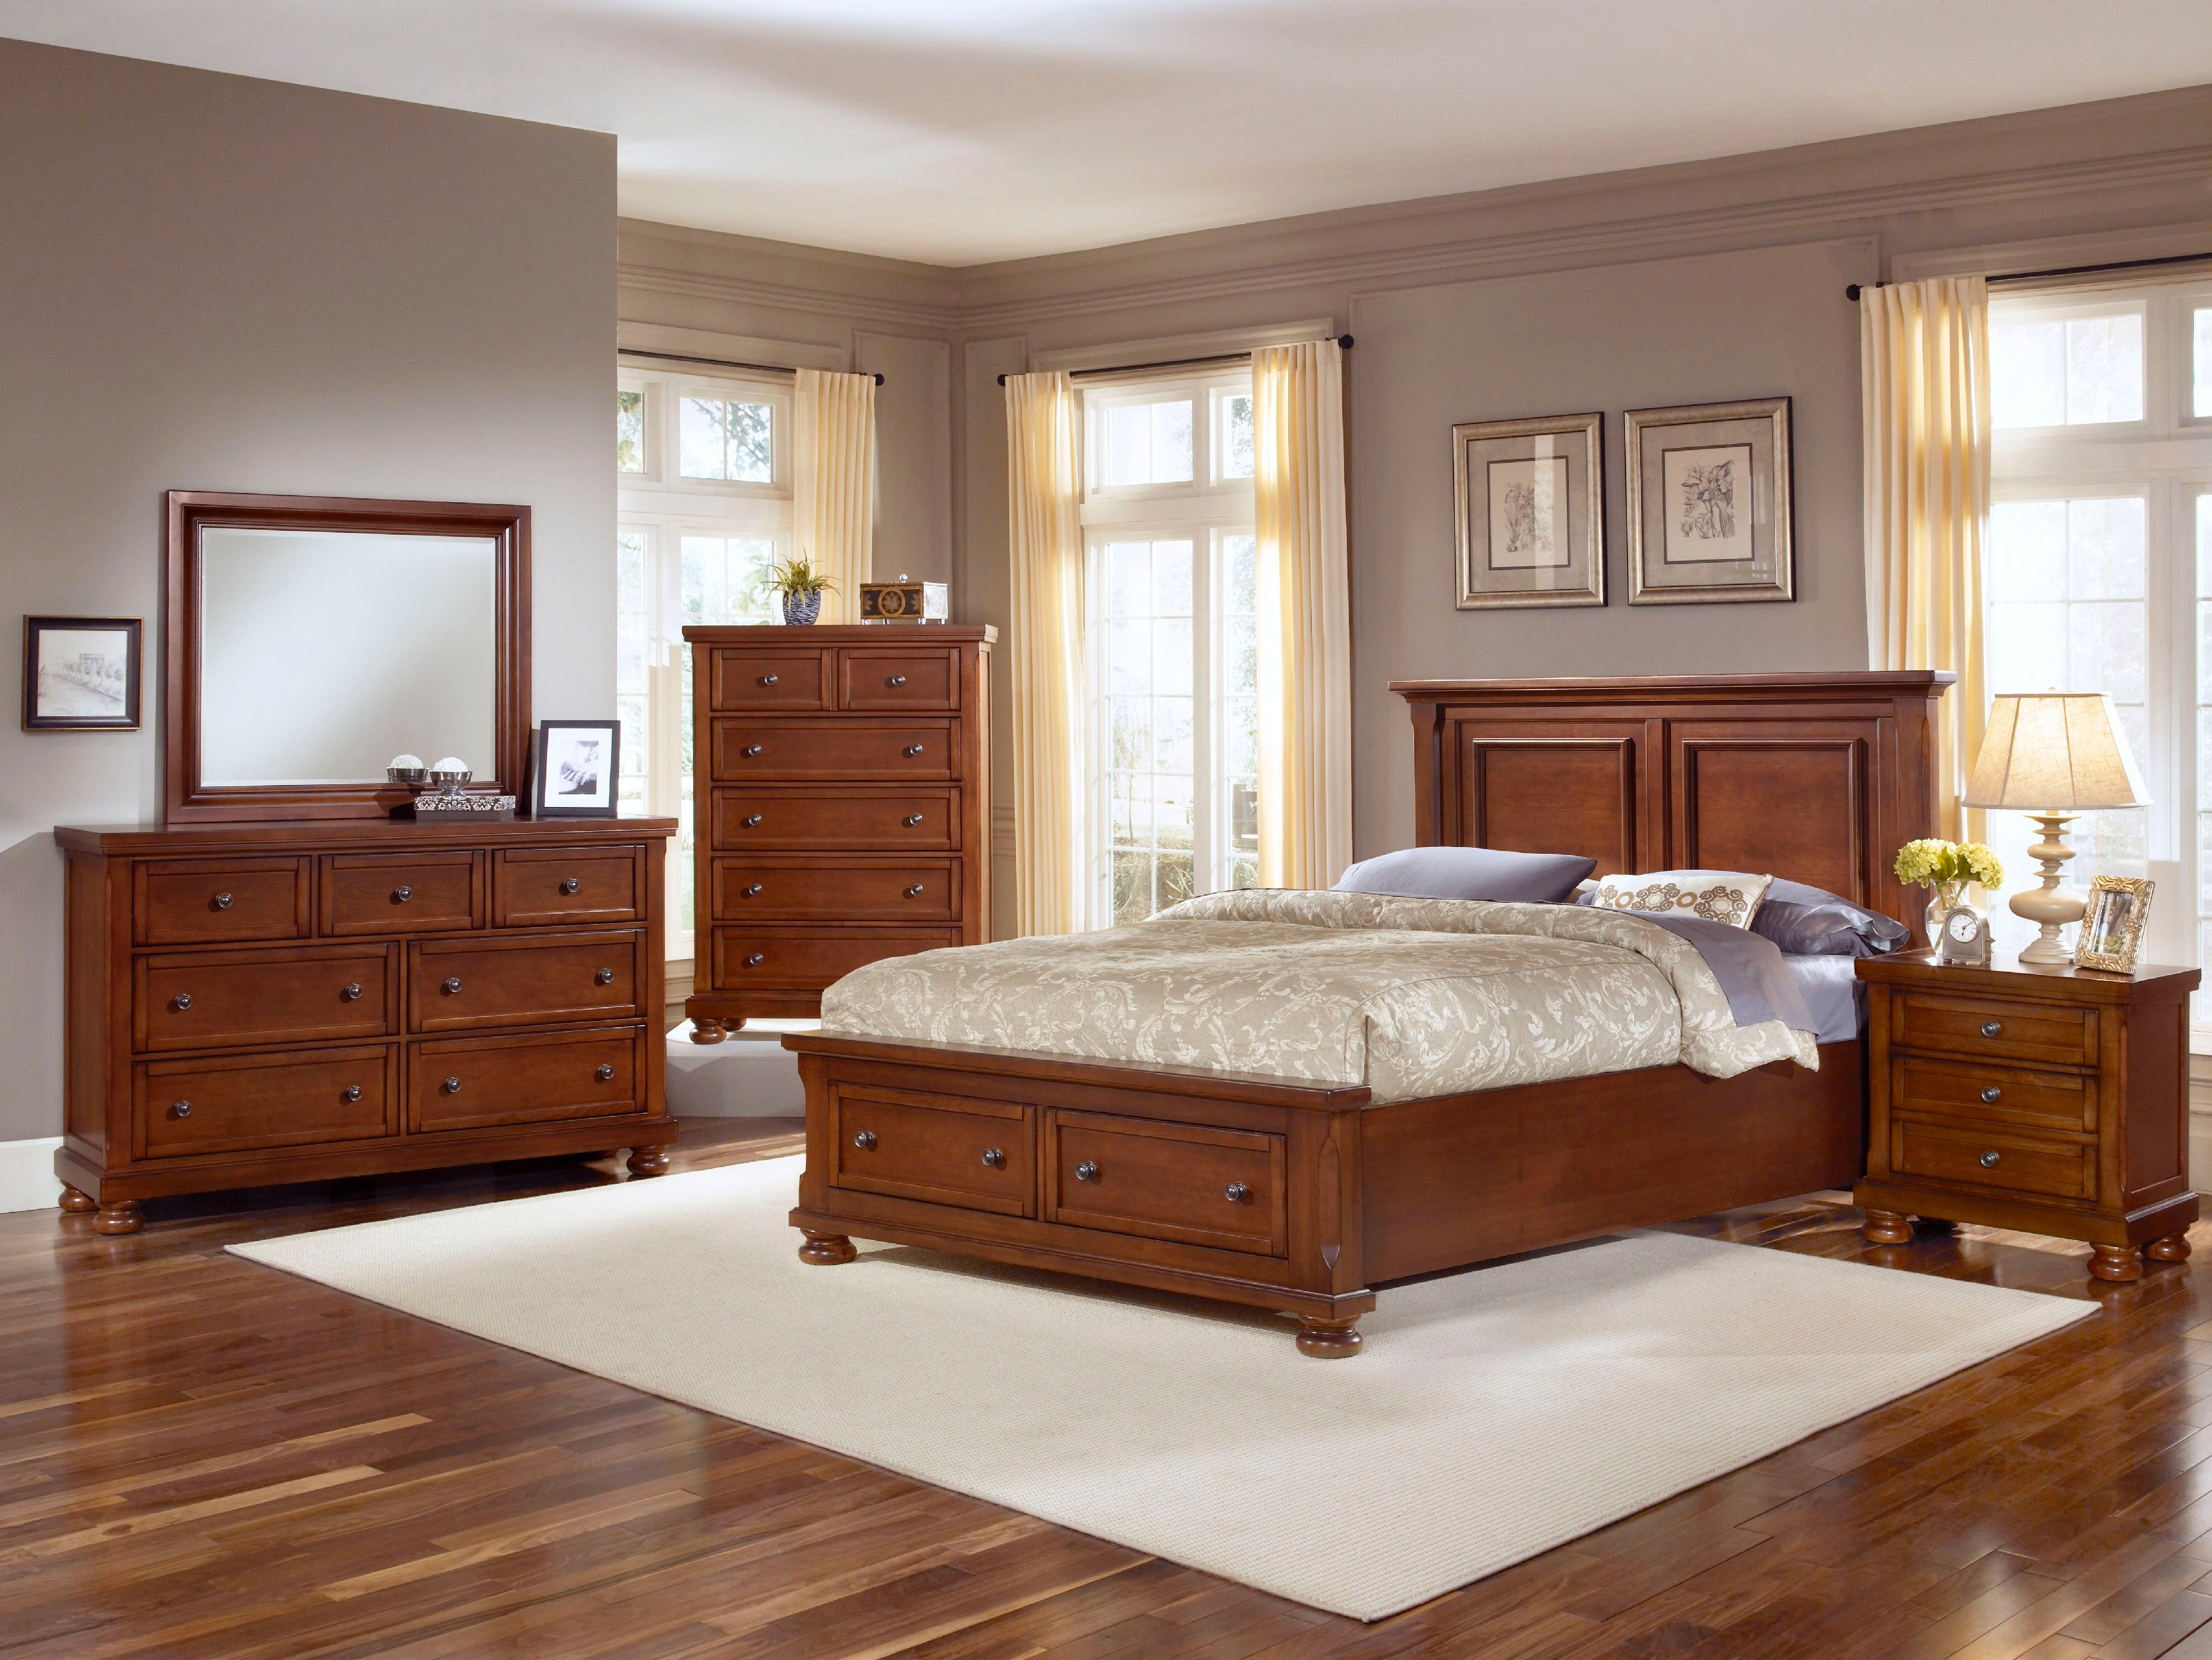 bassett bedroom sets vaughan bassett bedroom storage footboard 5 0 532 050b 10186